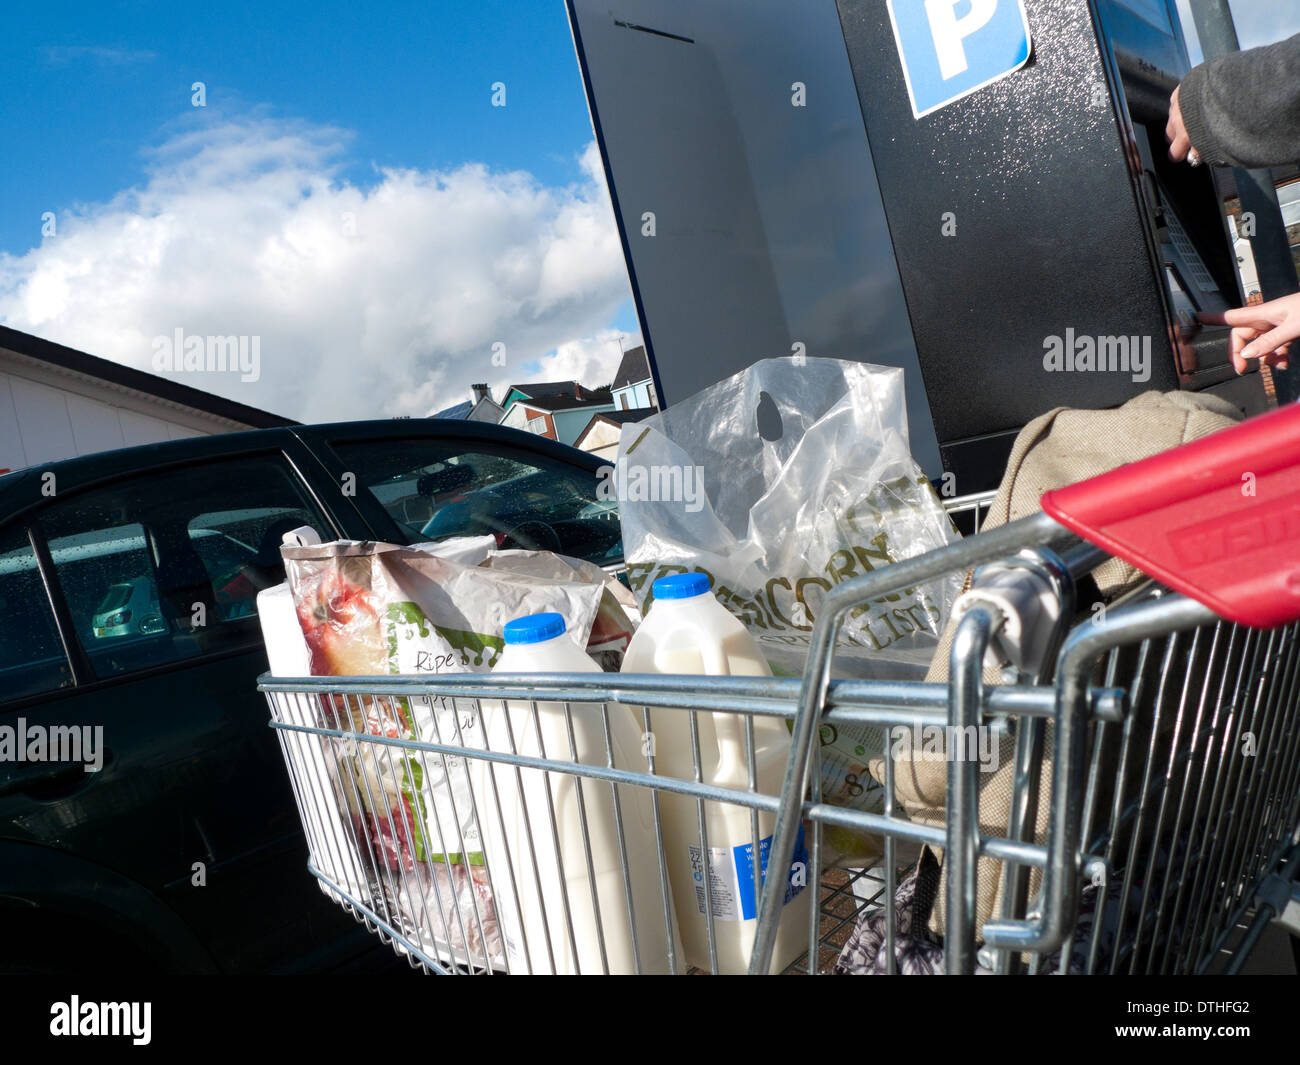 A full shopping cart with milk containers in the carpark at Sainsbury's supermarket Lampeter Ceredigion Wales UK KATHY DEWITT - Stock Image